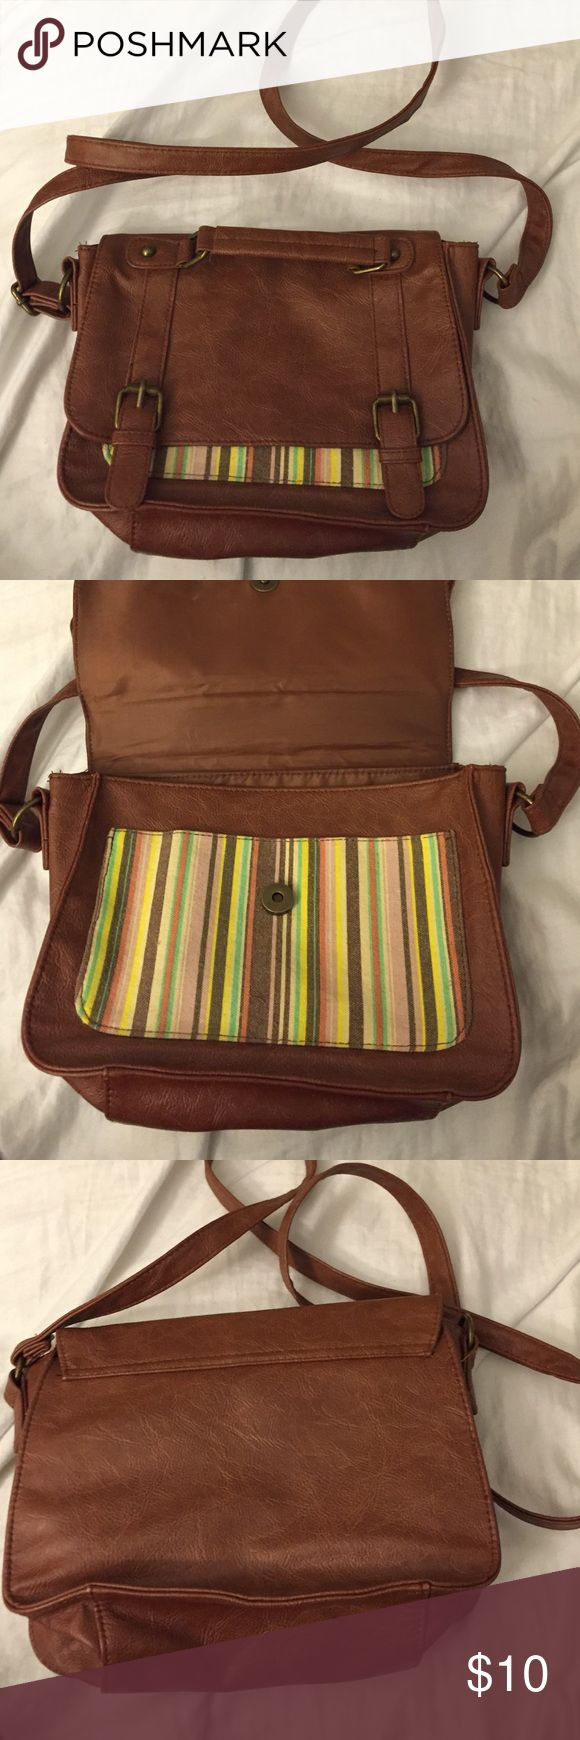 Colorful crossbody bag Small brown crossbody bag with colorful striped details. Mudd Bags Crossbody Bags